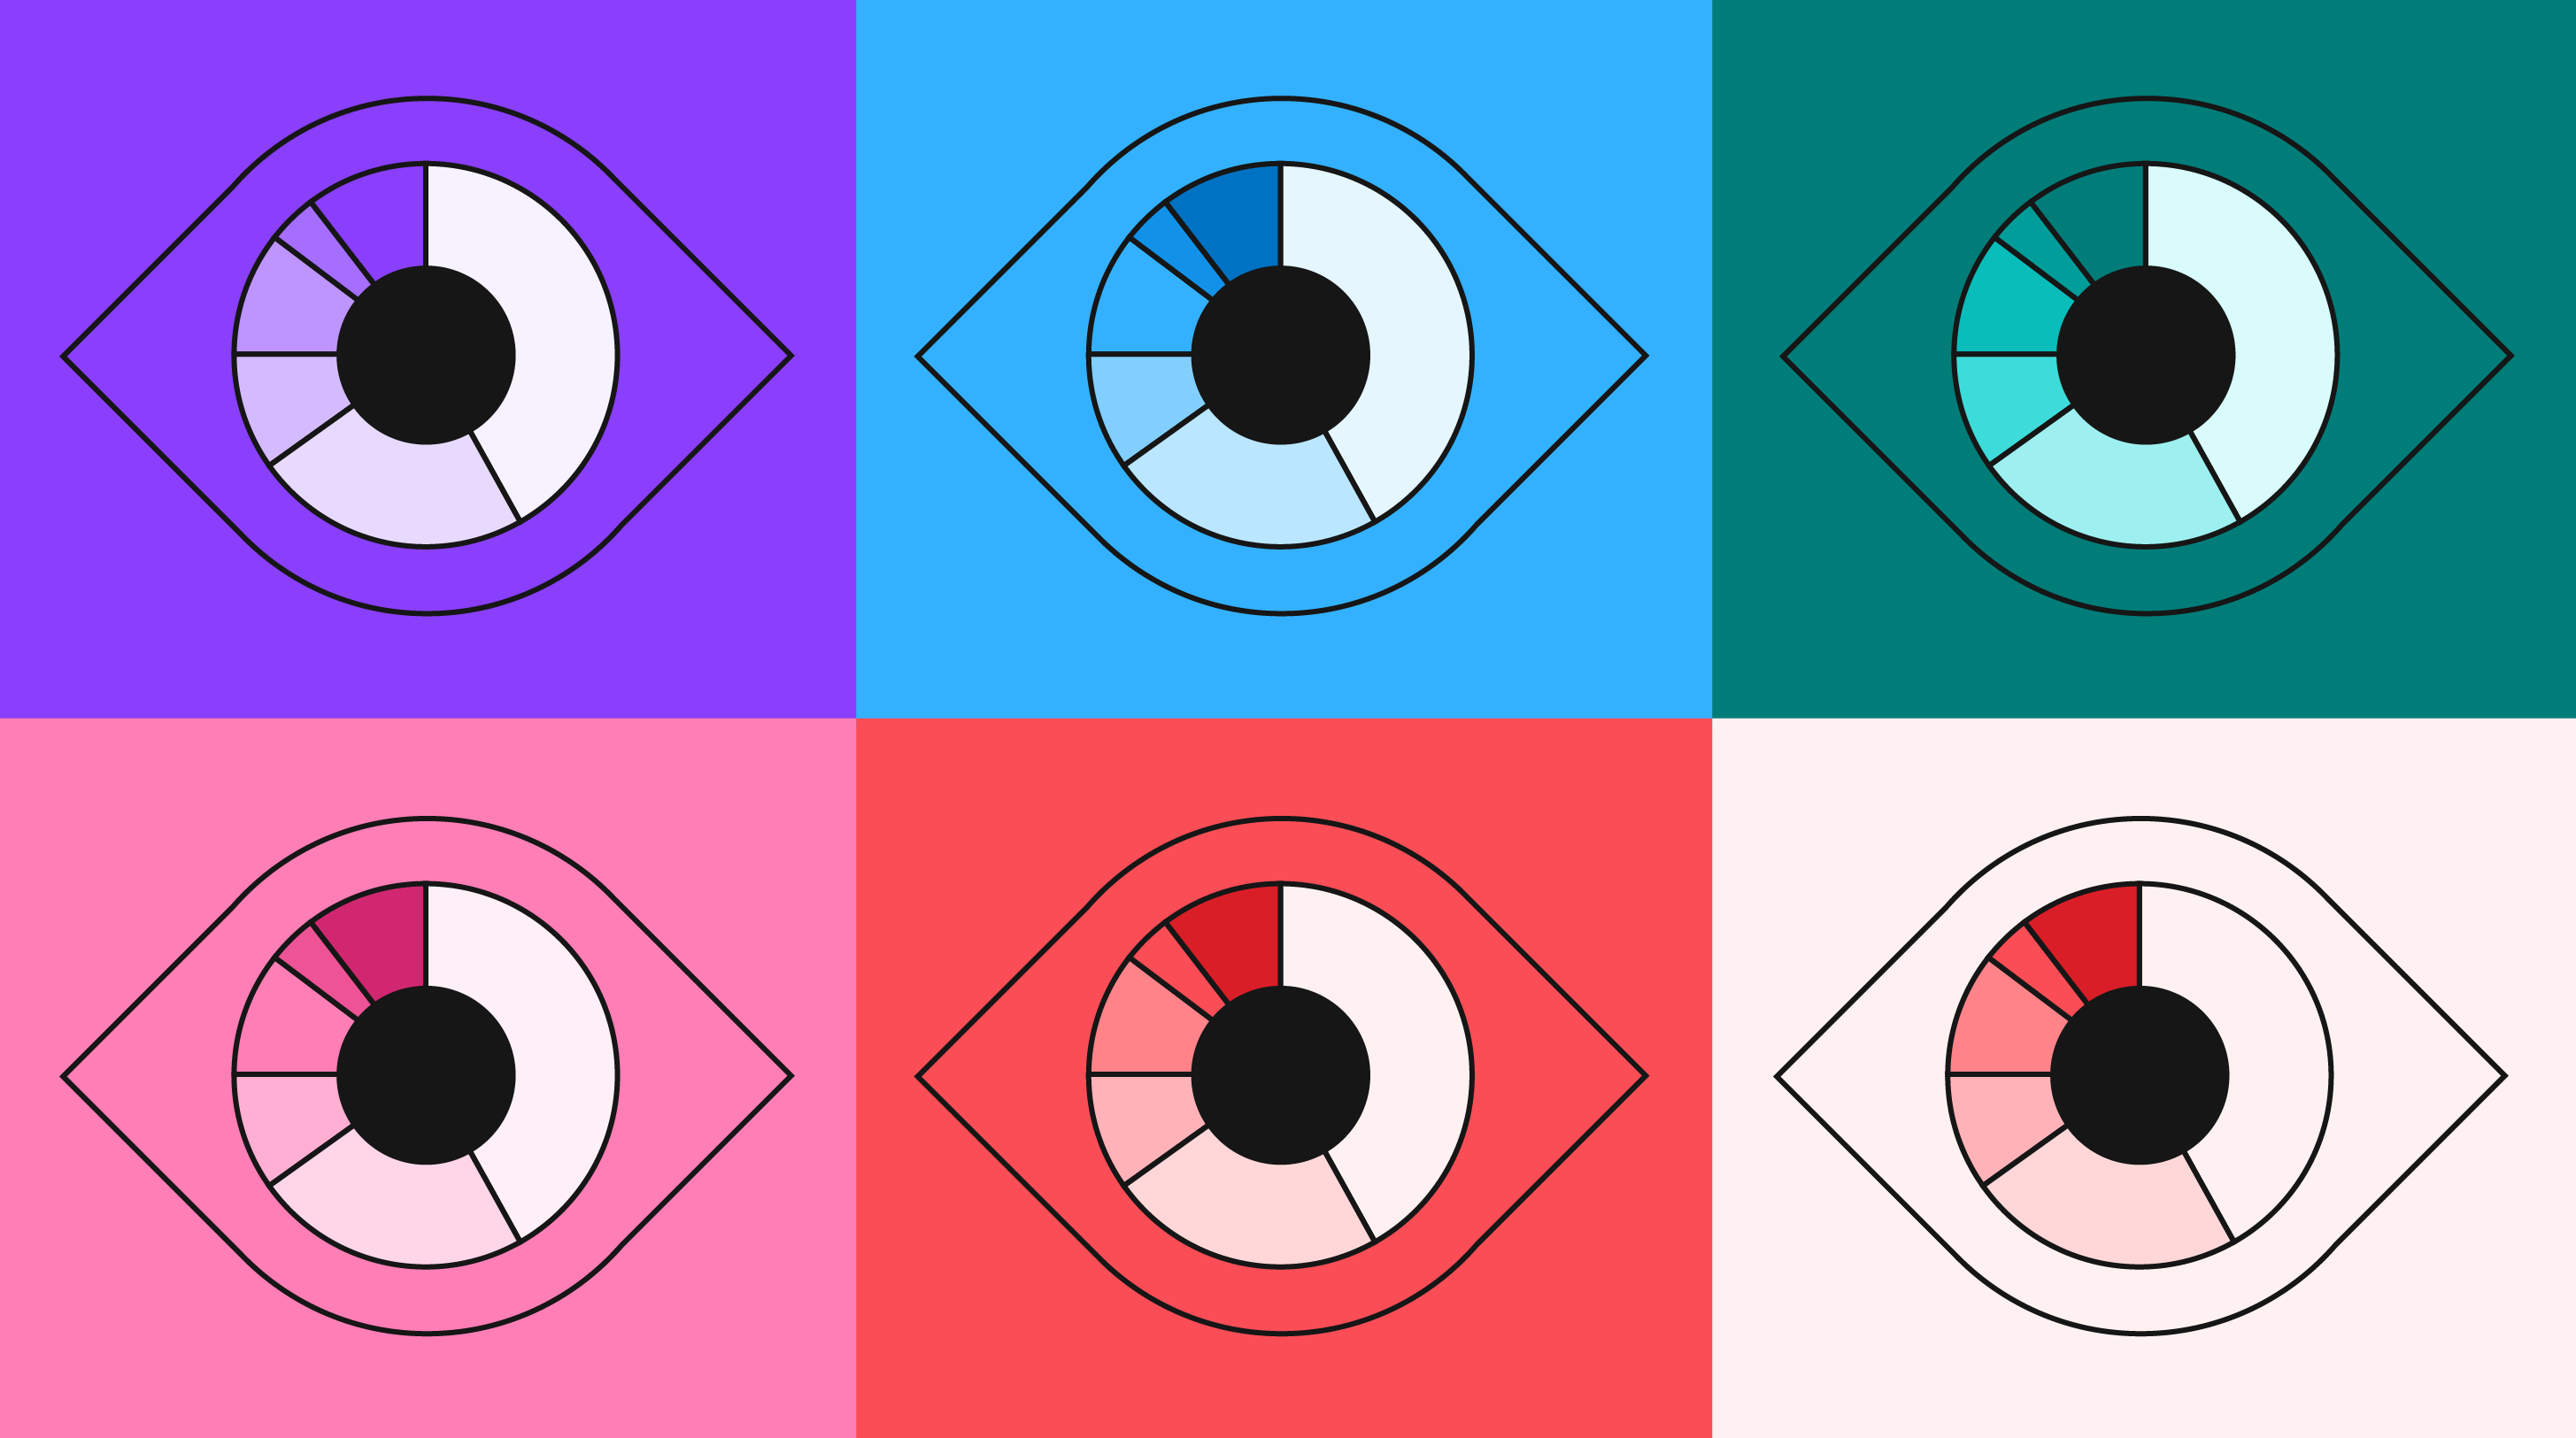 An illustration showing a grid of 6 images of the same eye in colors from the categorical palette.